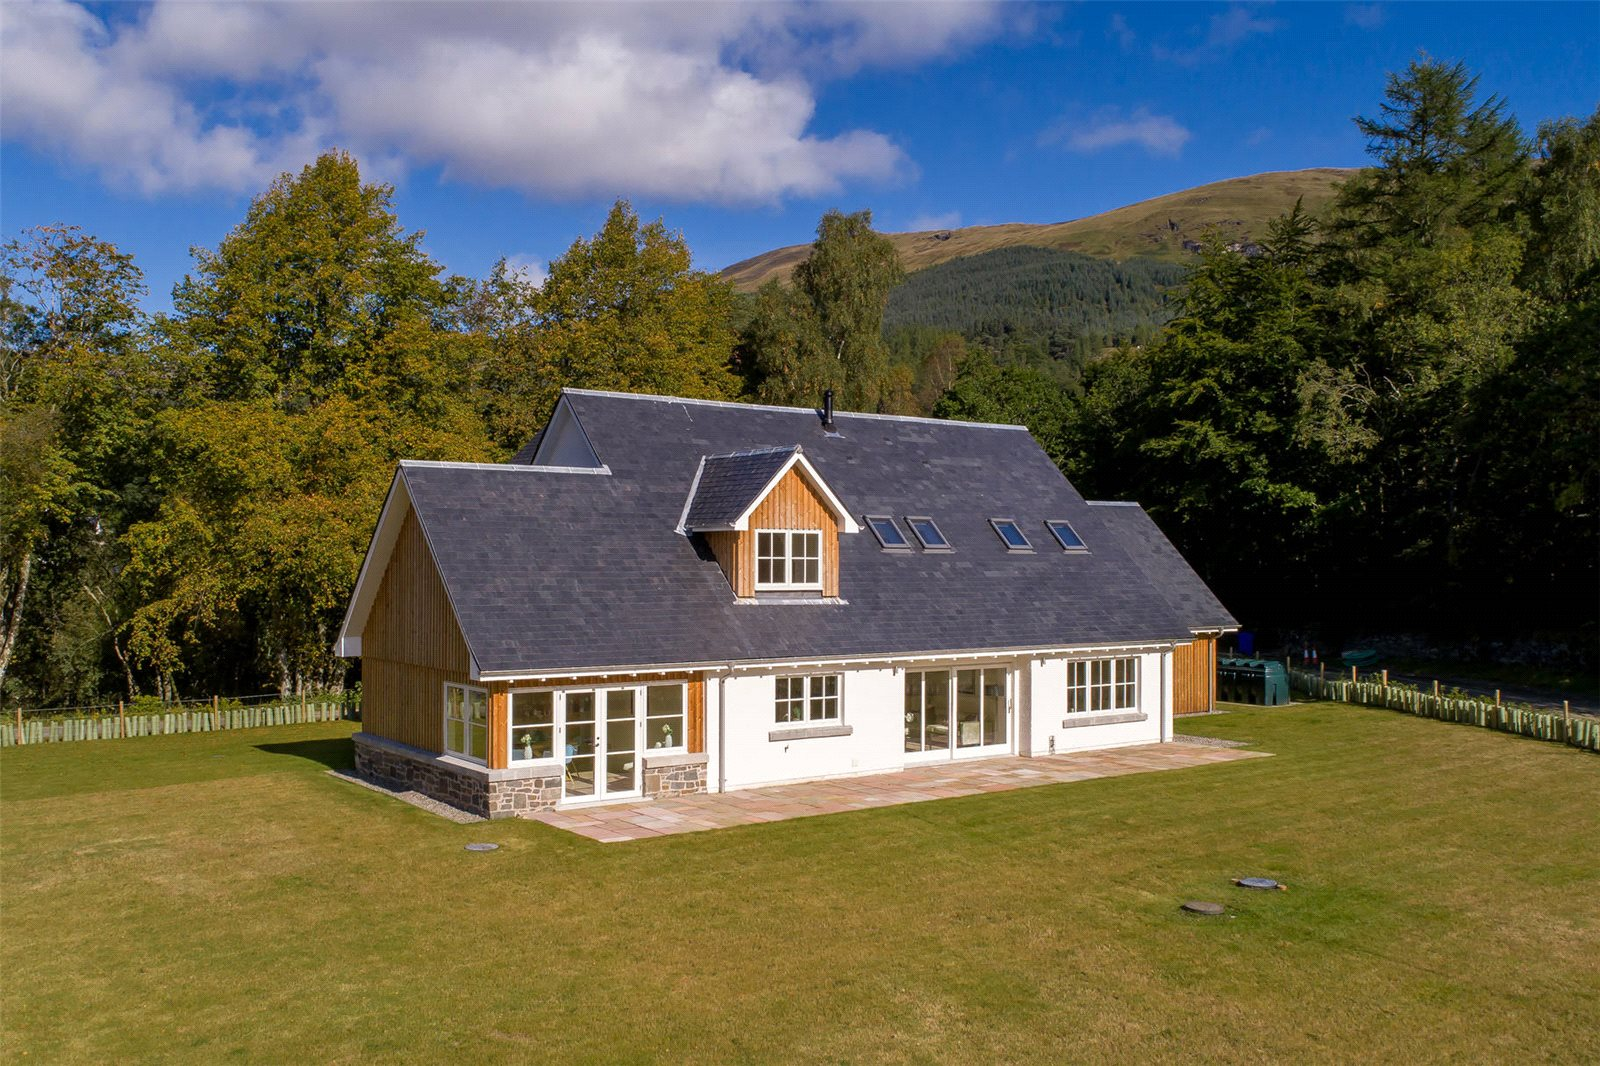 4 Bedrooms Detached House for sale in Stronvar Development Plot 10, Balquhidder, Lochearnhead, Stirlingshire, FK19